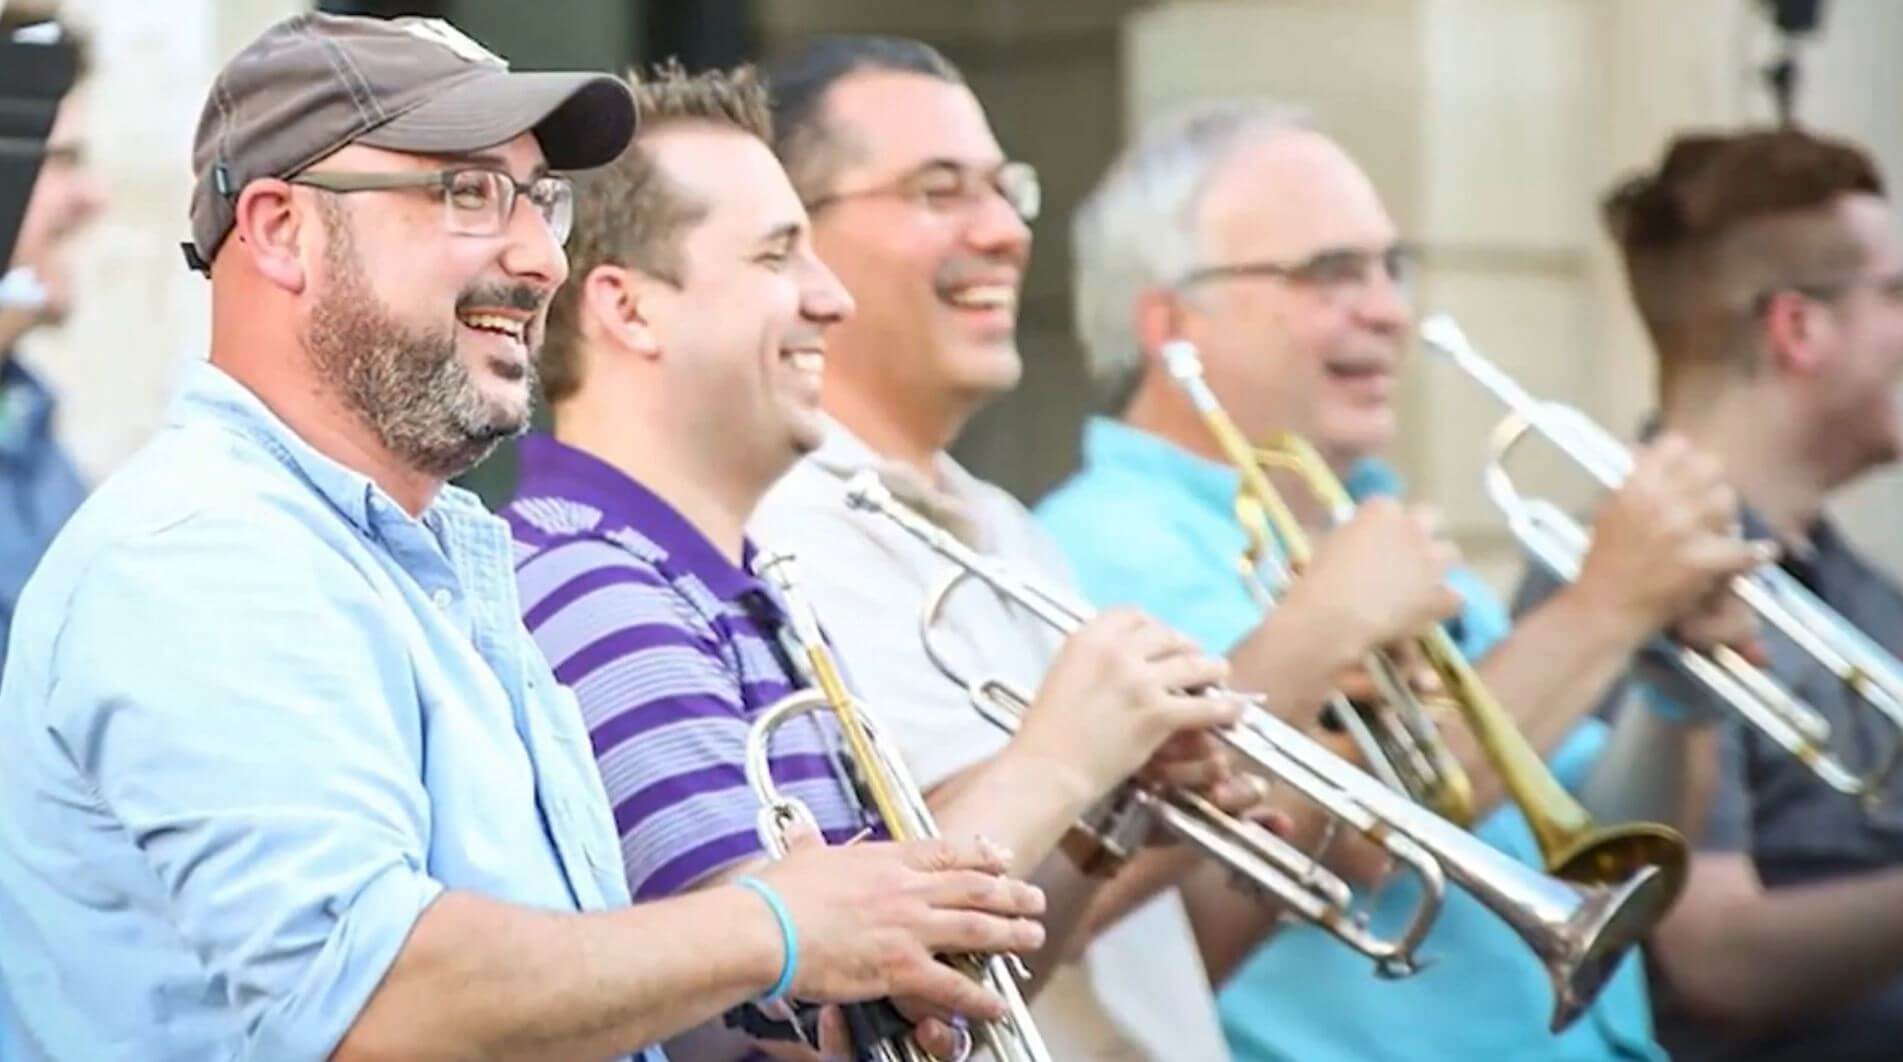 Macomb Illinois men playing trumpets